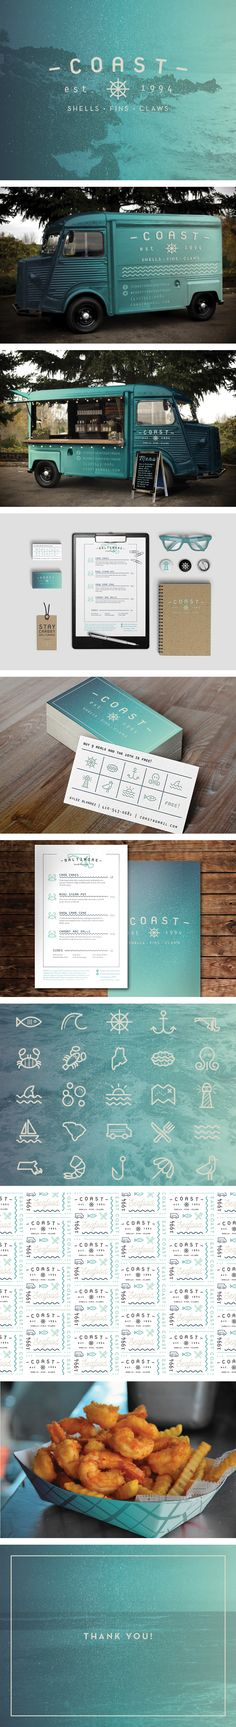 Coast Food Truck on Behance